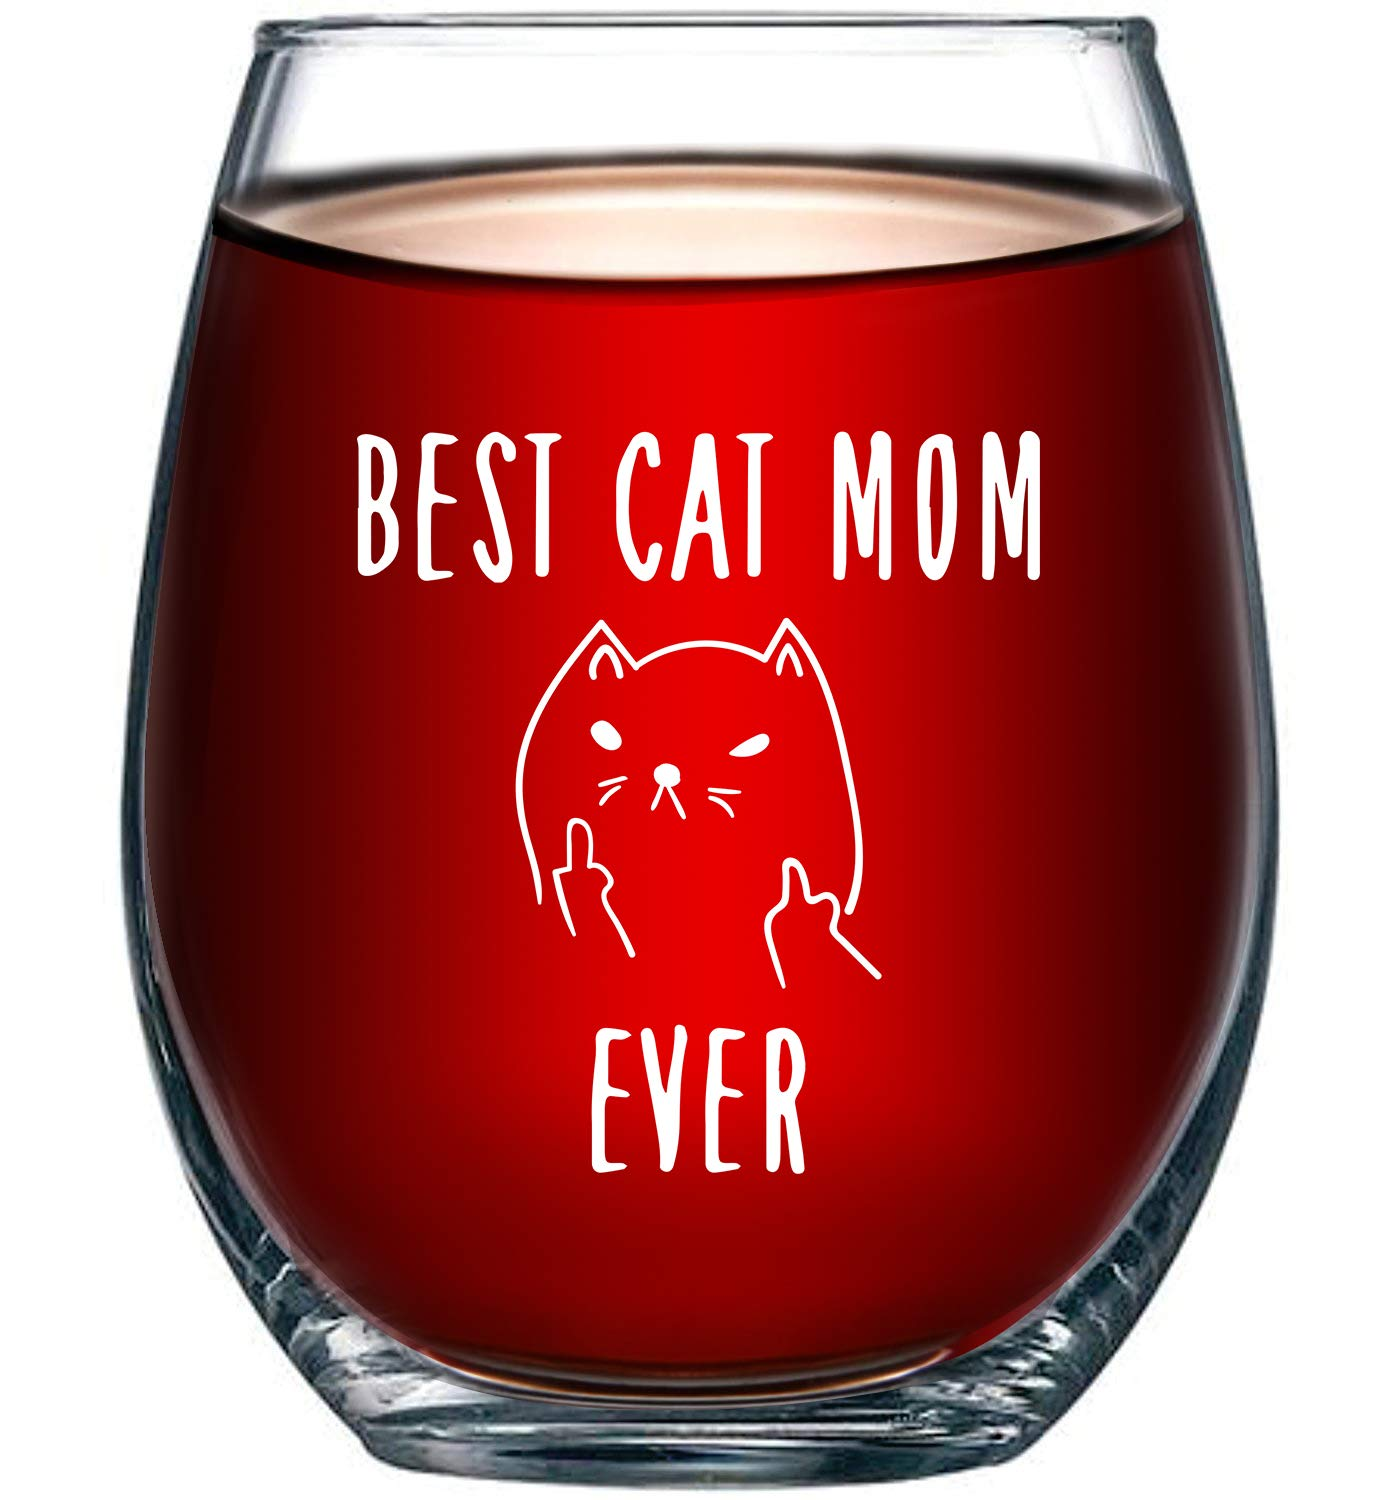 Best Cat Mom Ever Funny Wine Glass 15oz – Unique Christmas Gift Idea for Cat Lovers – Perfect Birthday Gifts for Women – Rude Sarcastic Cat Meme Cup – Evening Mug